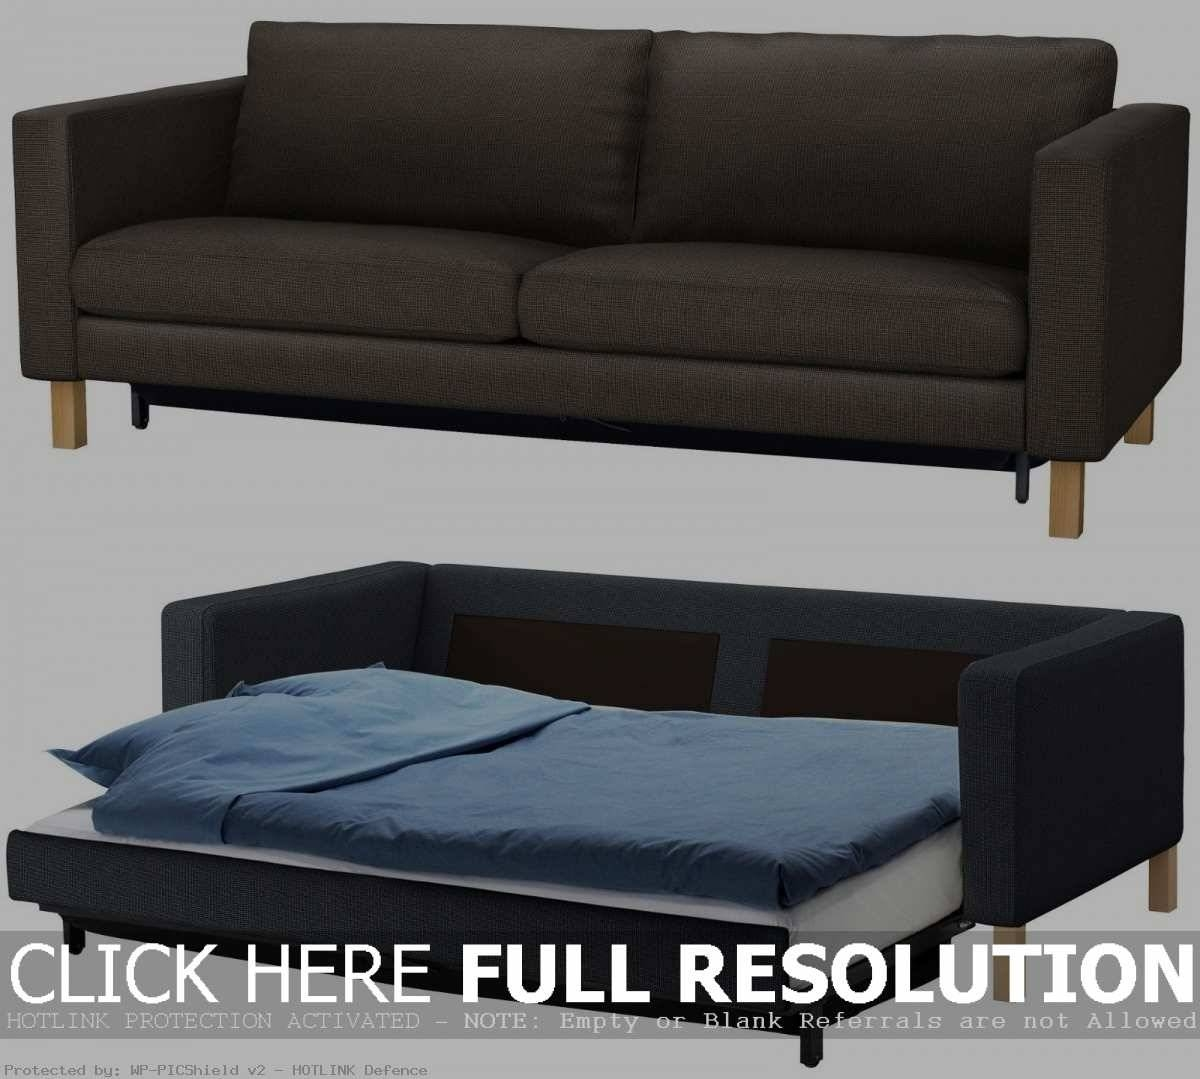 Small Sleeper Sofa Ikea intended for Sleeper Sofa Sectional Ikea (Image 17 of 25)